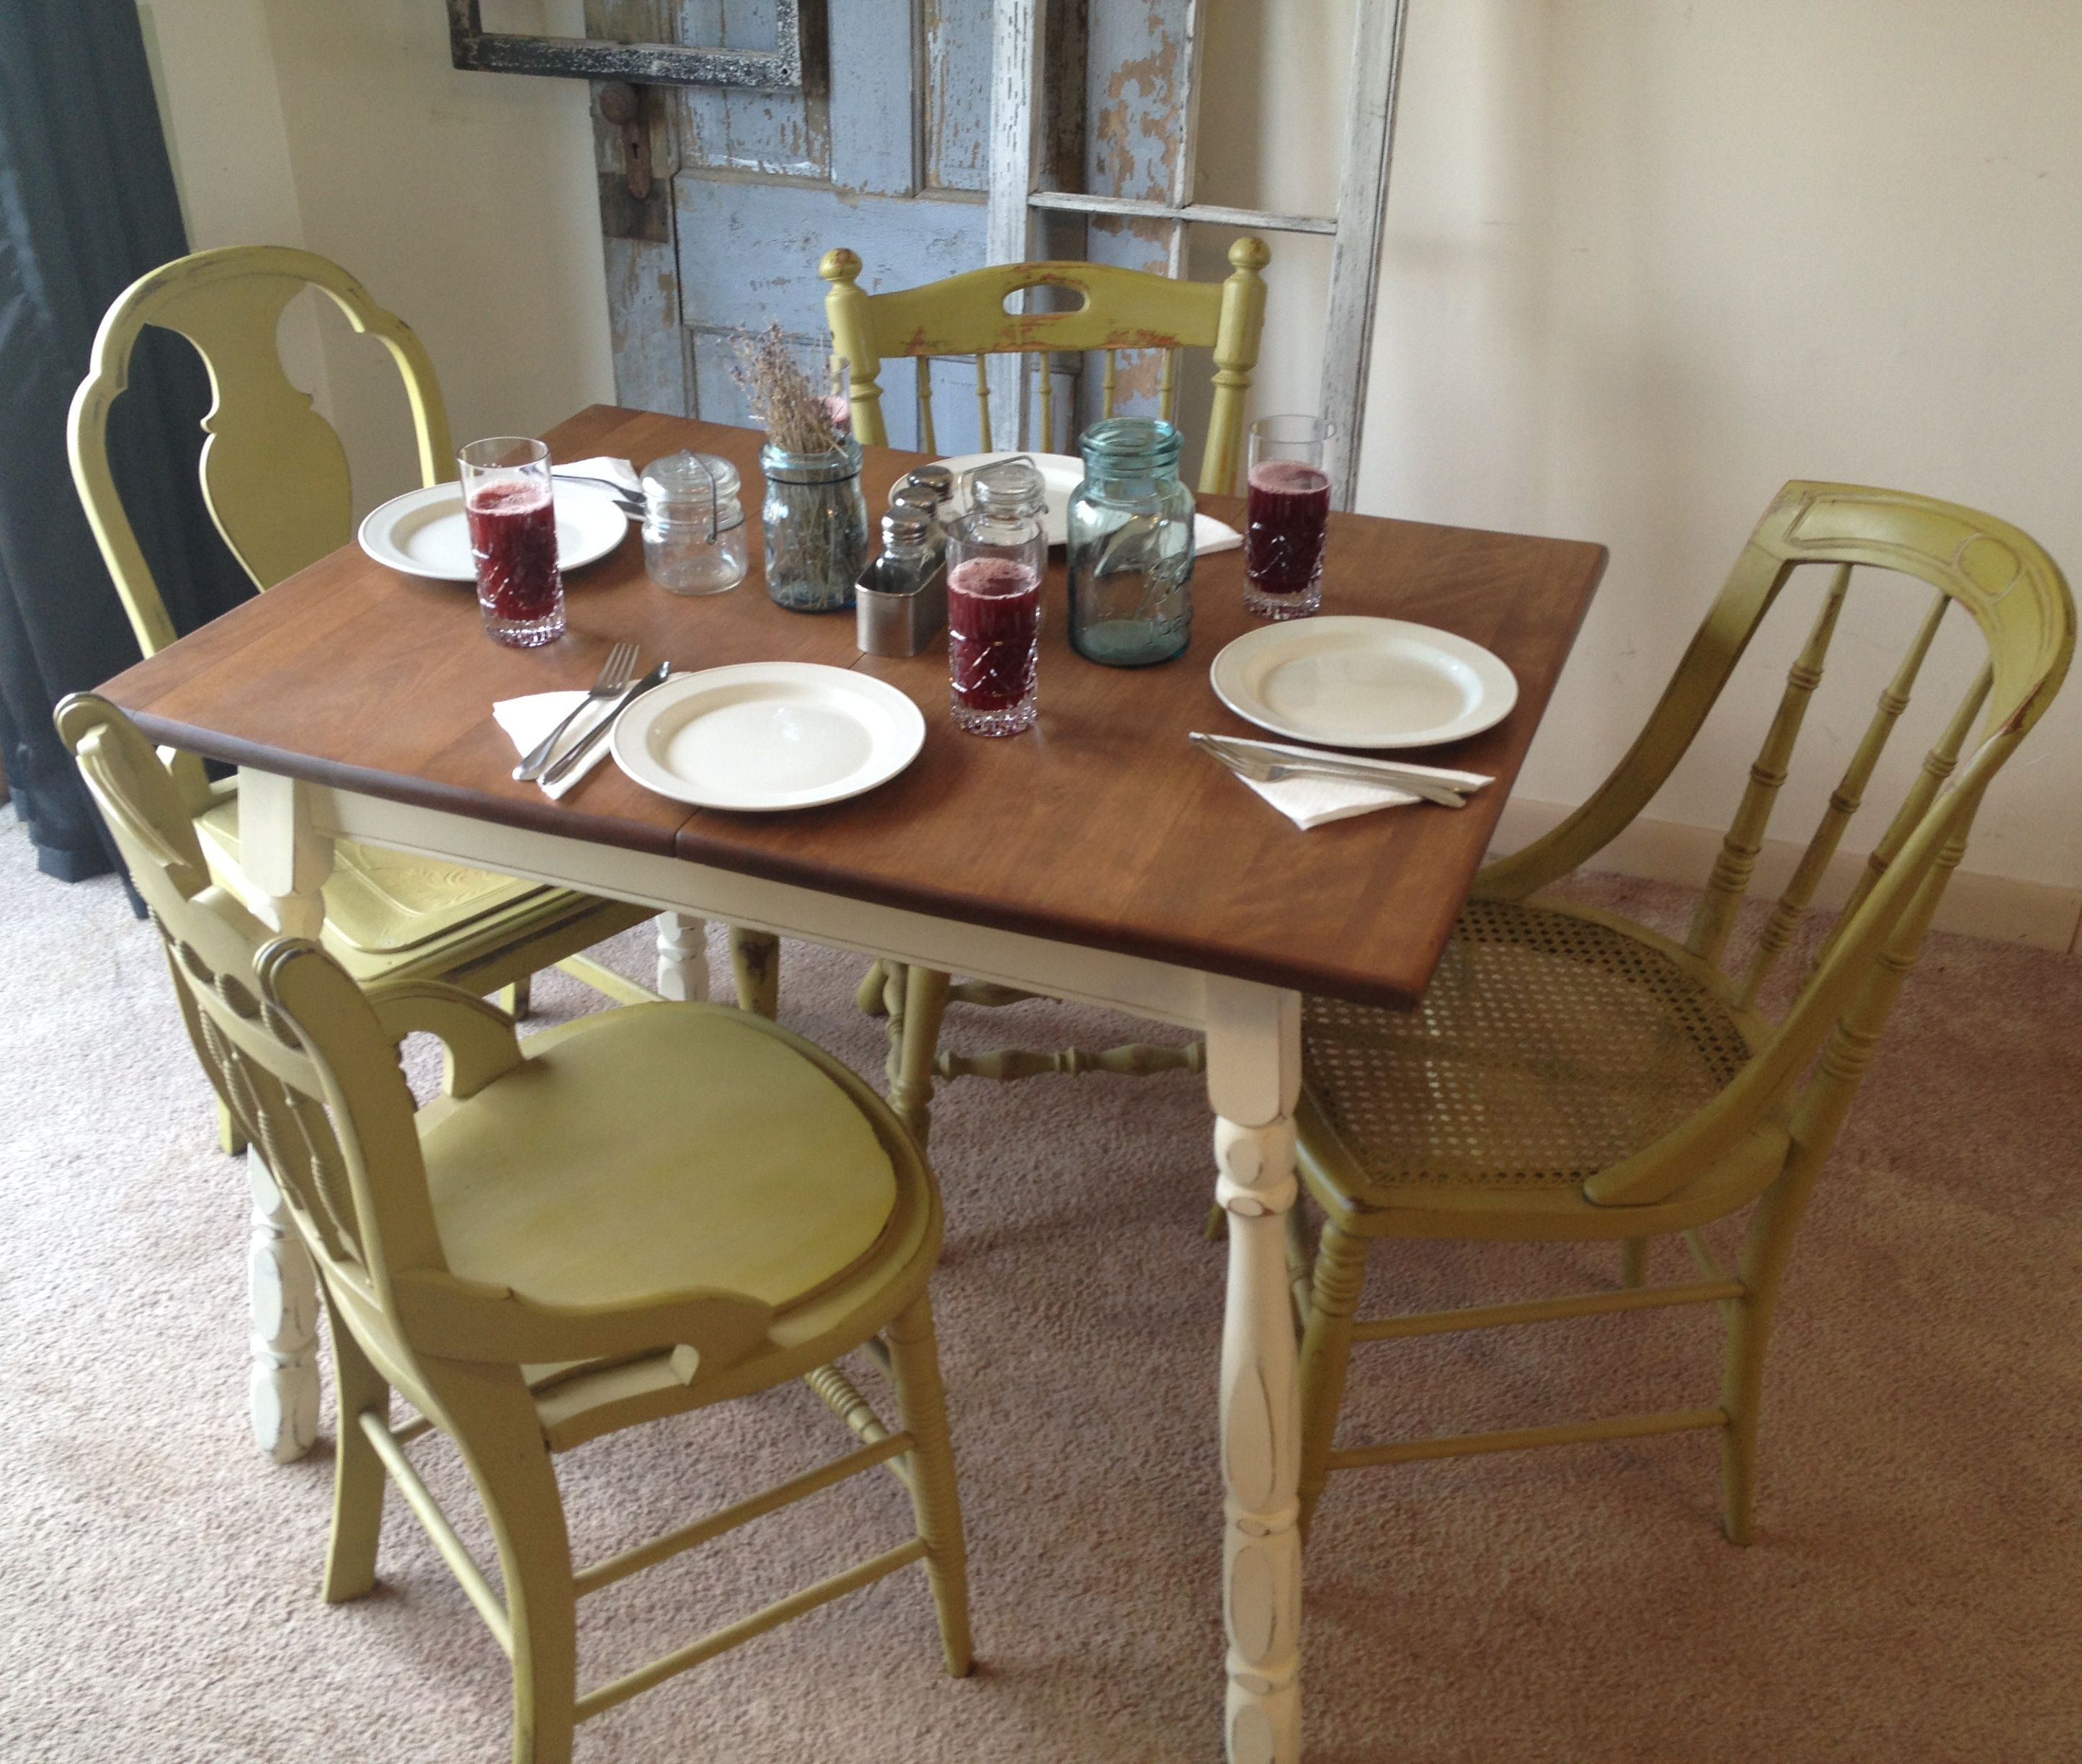 Small kitchen table and 2 chairs  Kitchen Tables And Chair Sets Home Design and Decor Reviews